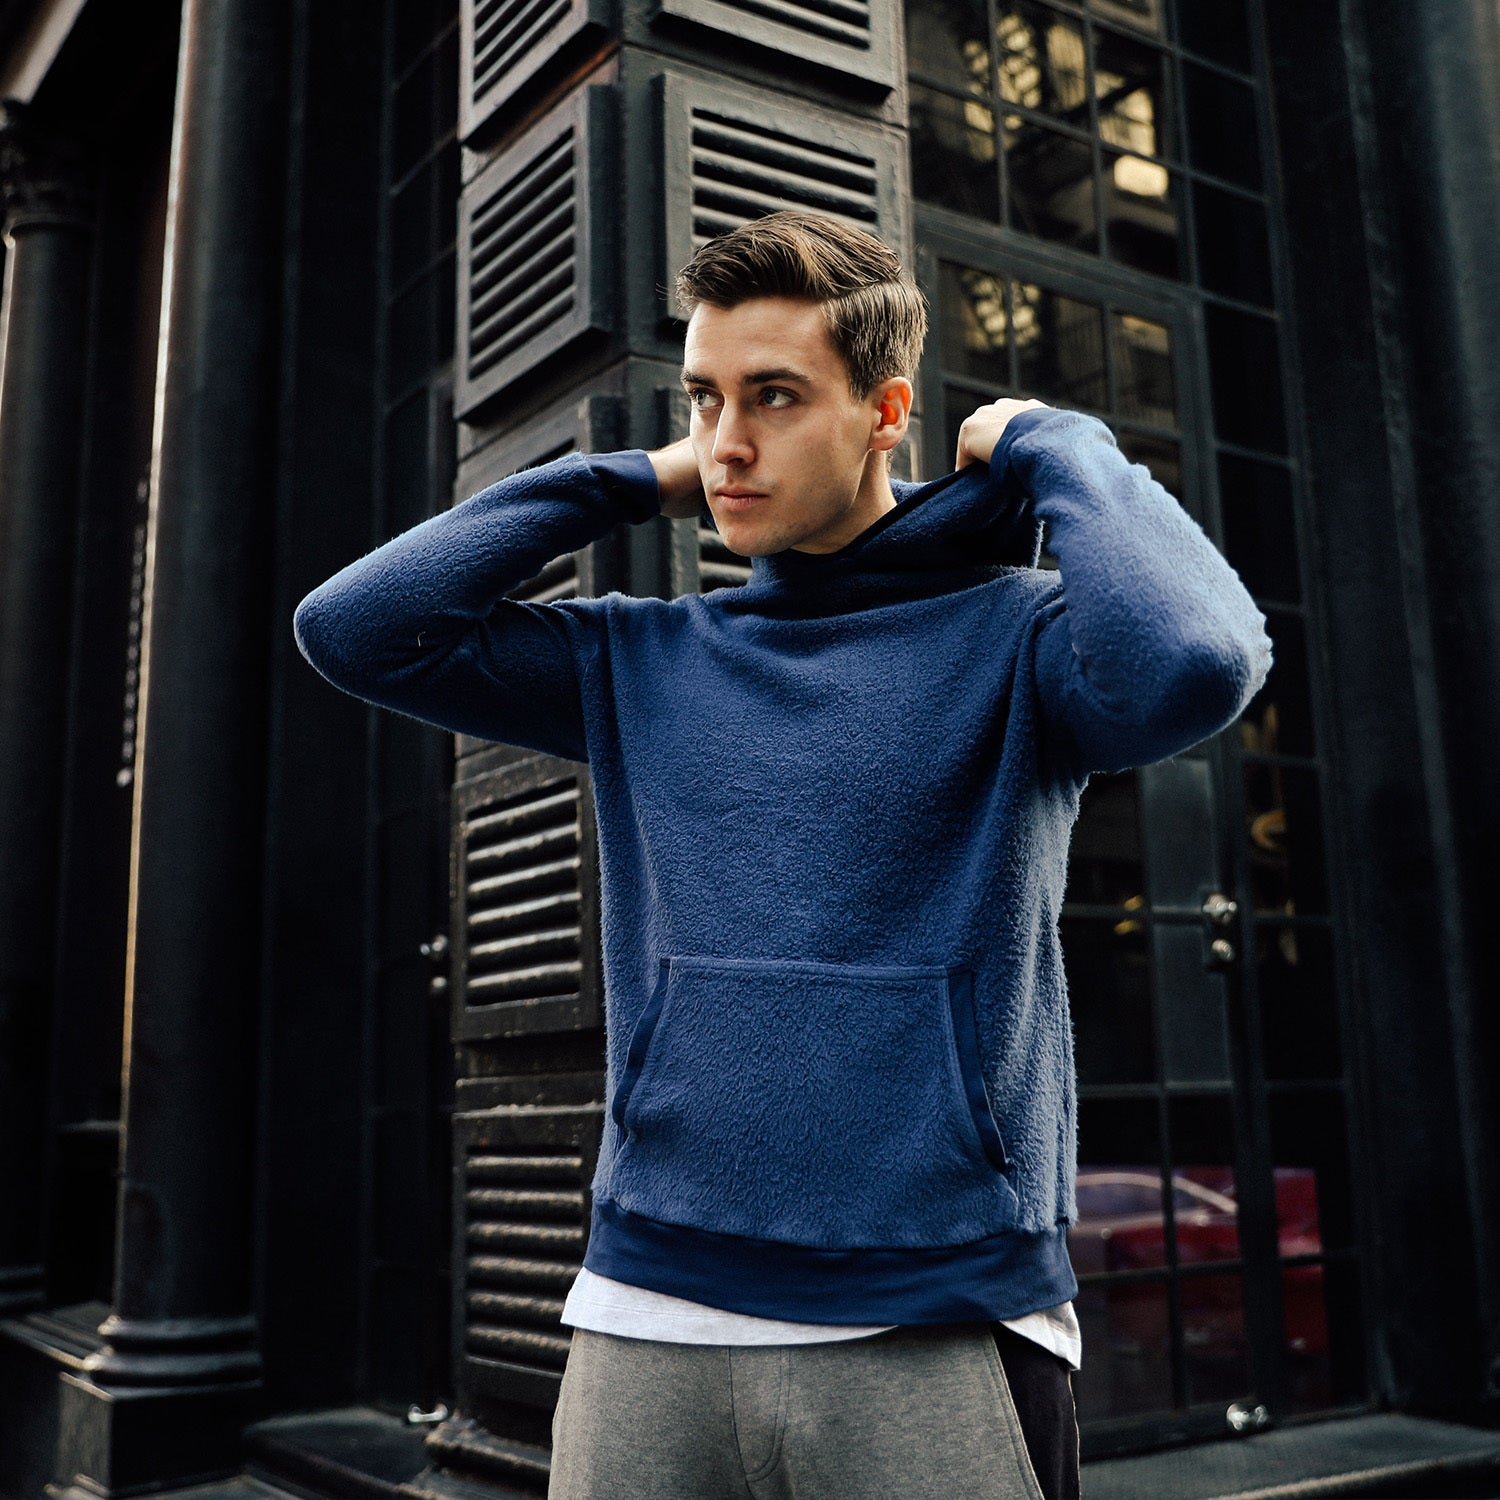 Sherpa Drop Shoulder Hoodie in Blue - Mitchell Evan